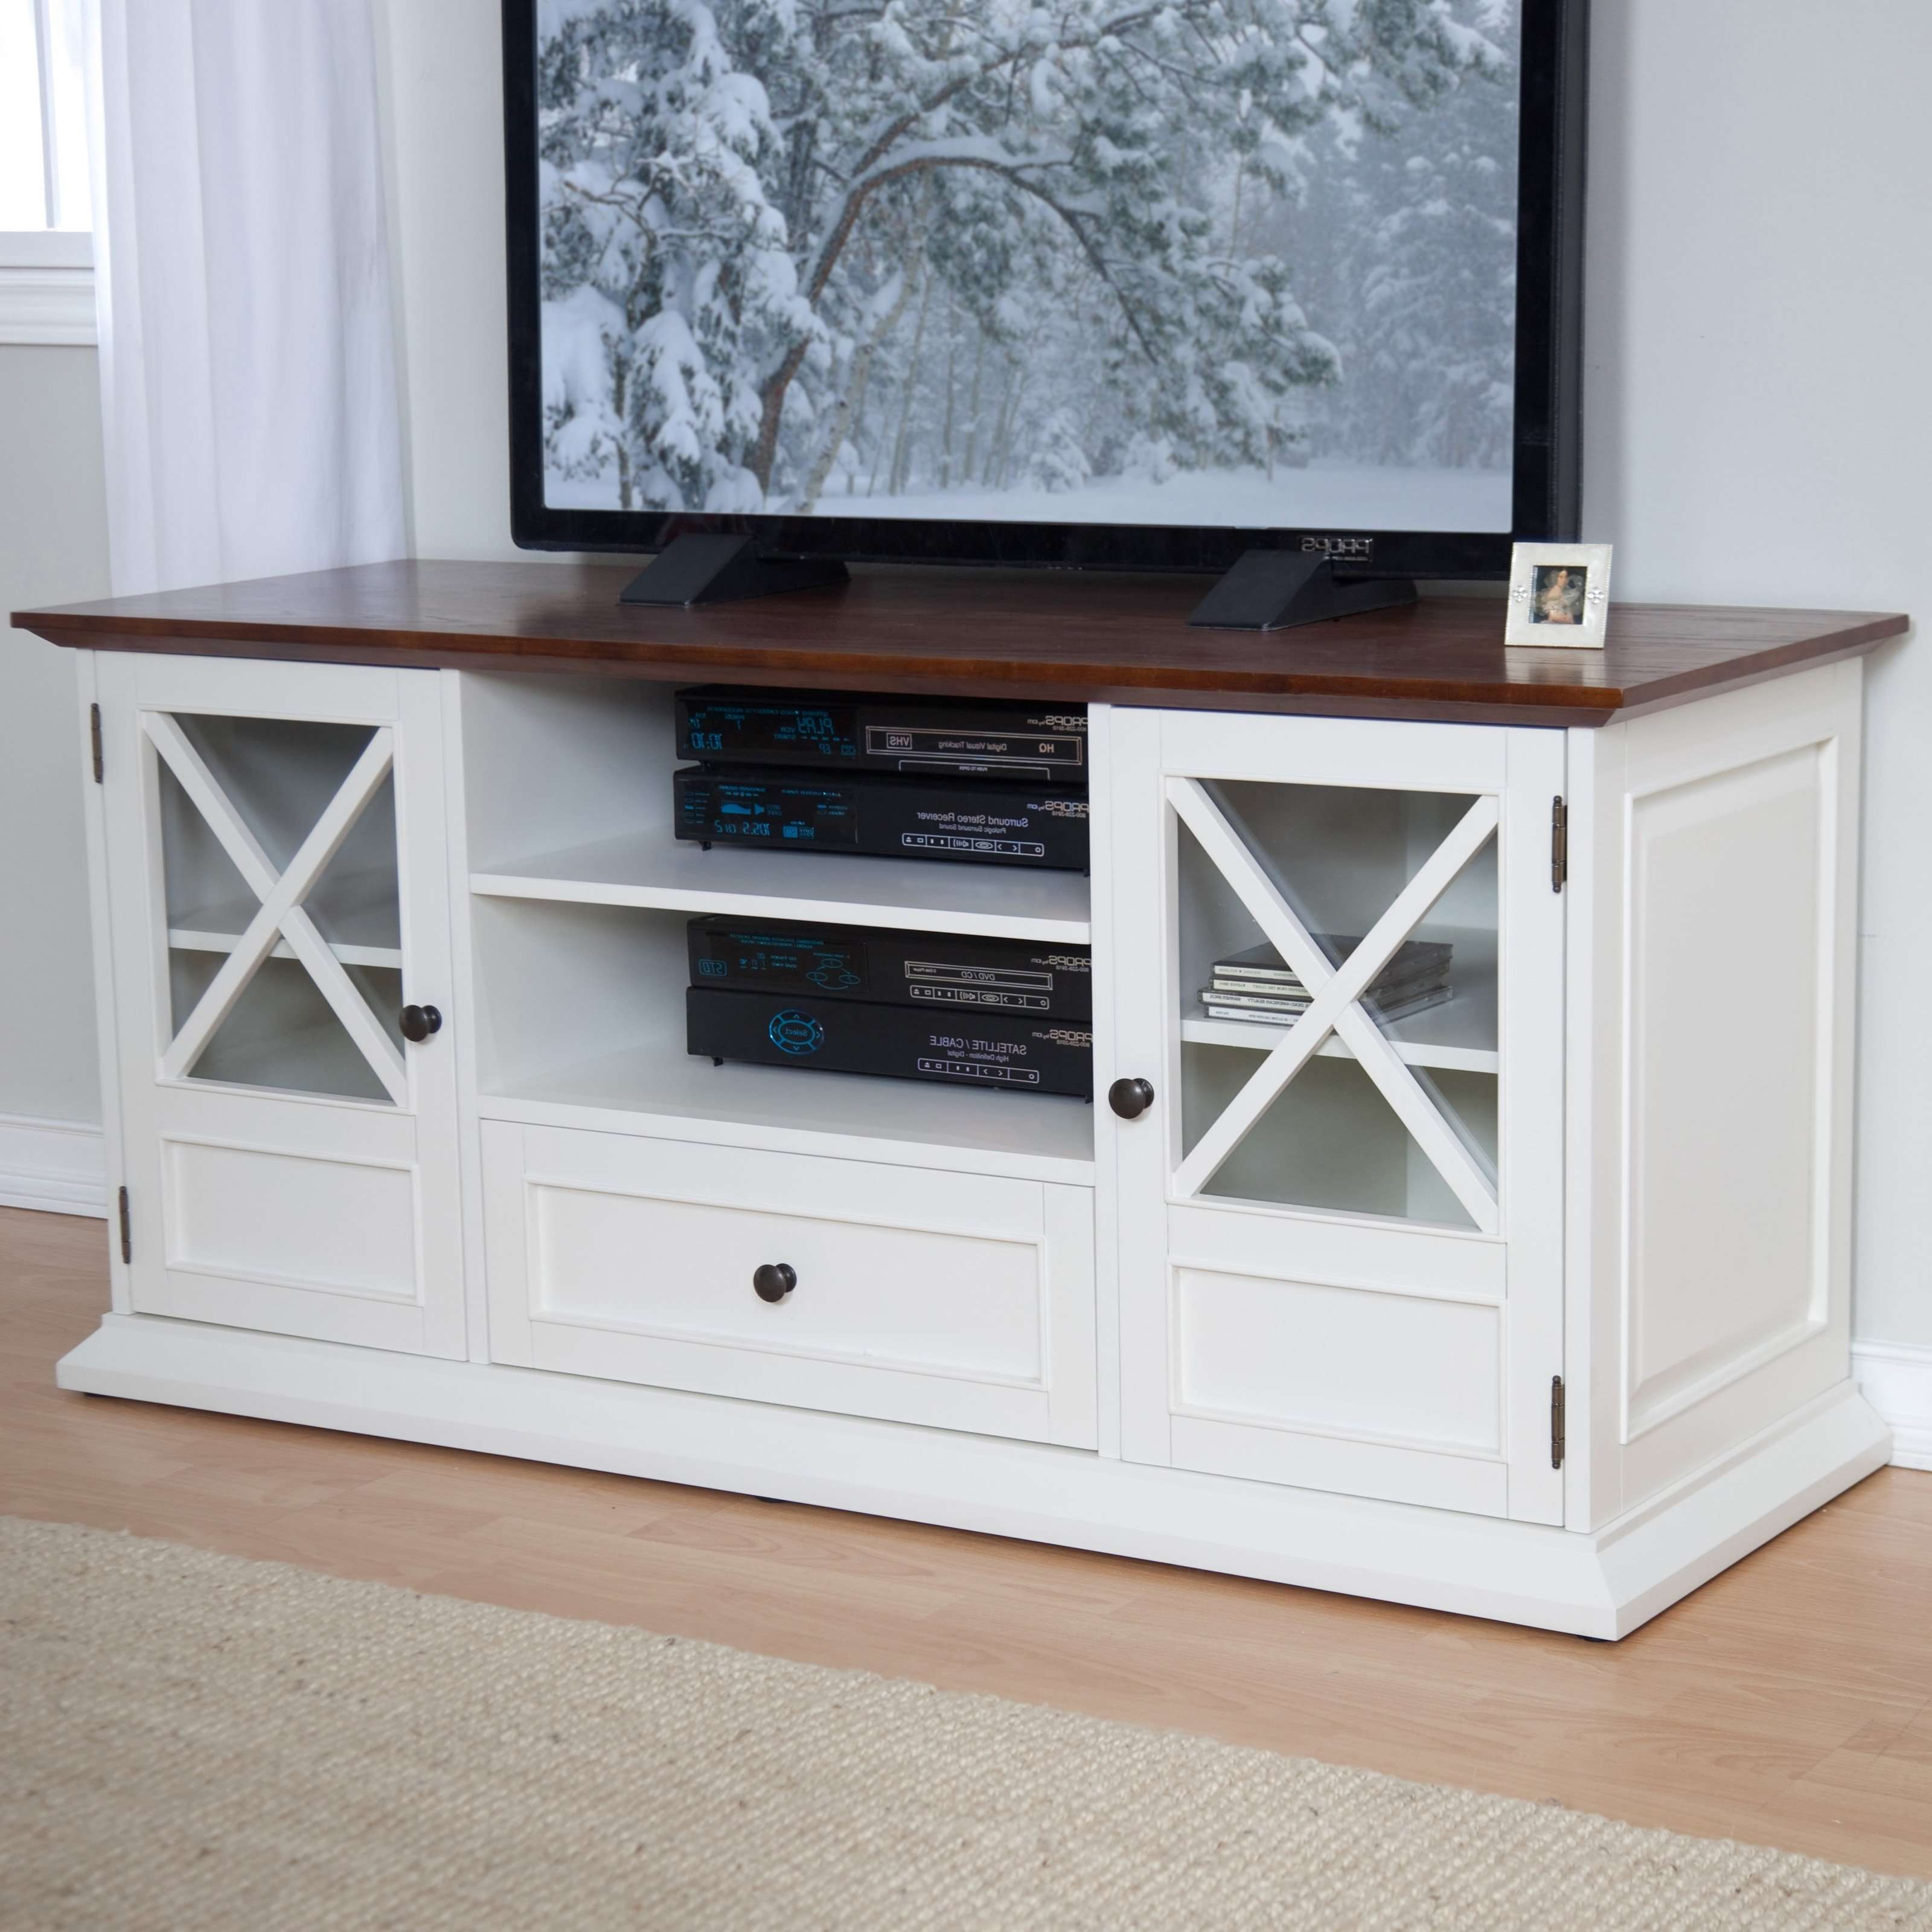 Belham Living Hampton Tv Stand – White/oak | Hayneedle For Tv Cabinets With Drawers (View 3 of 20)